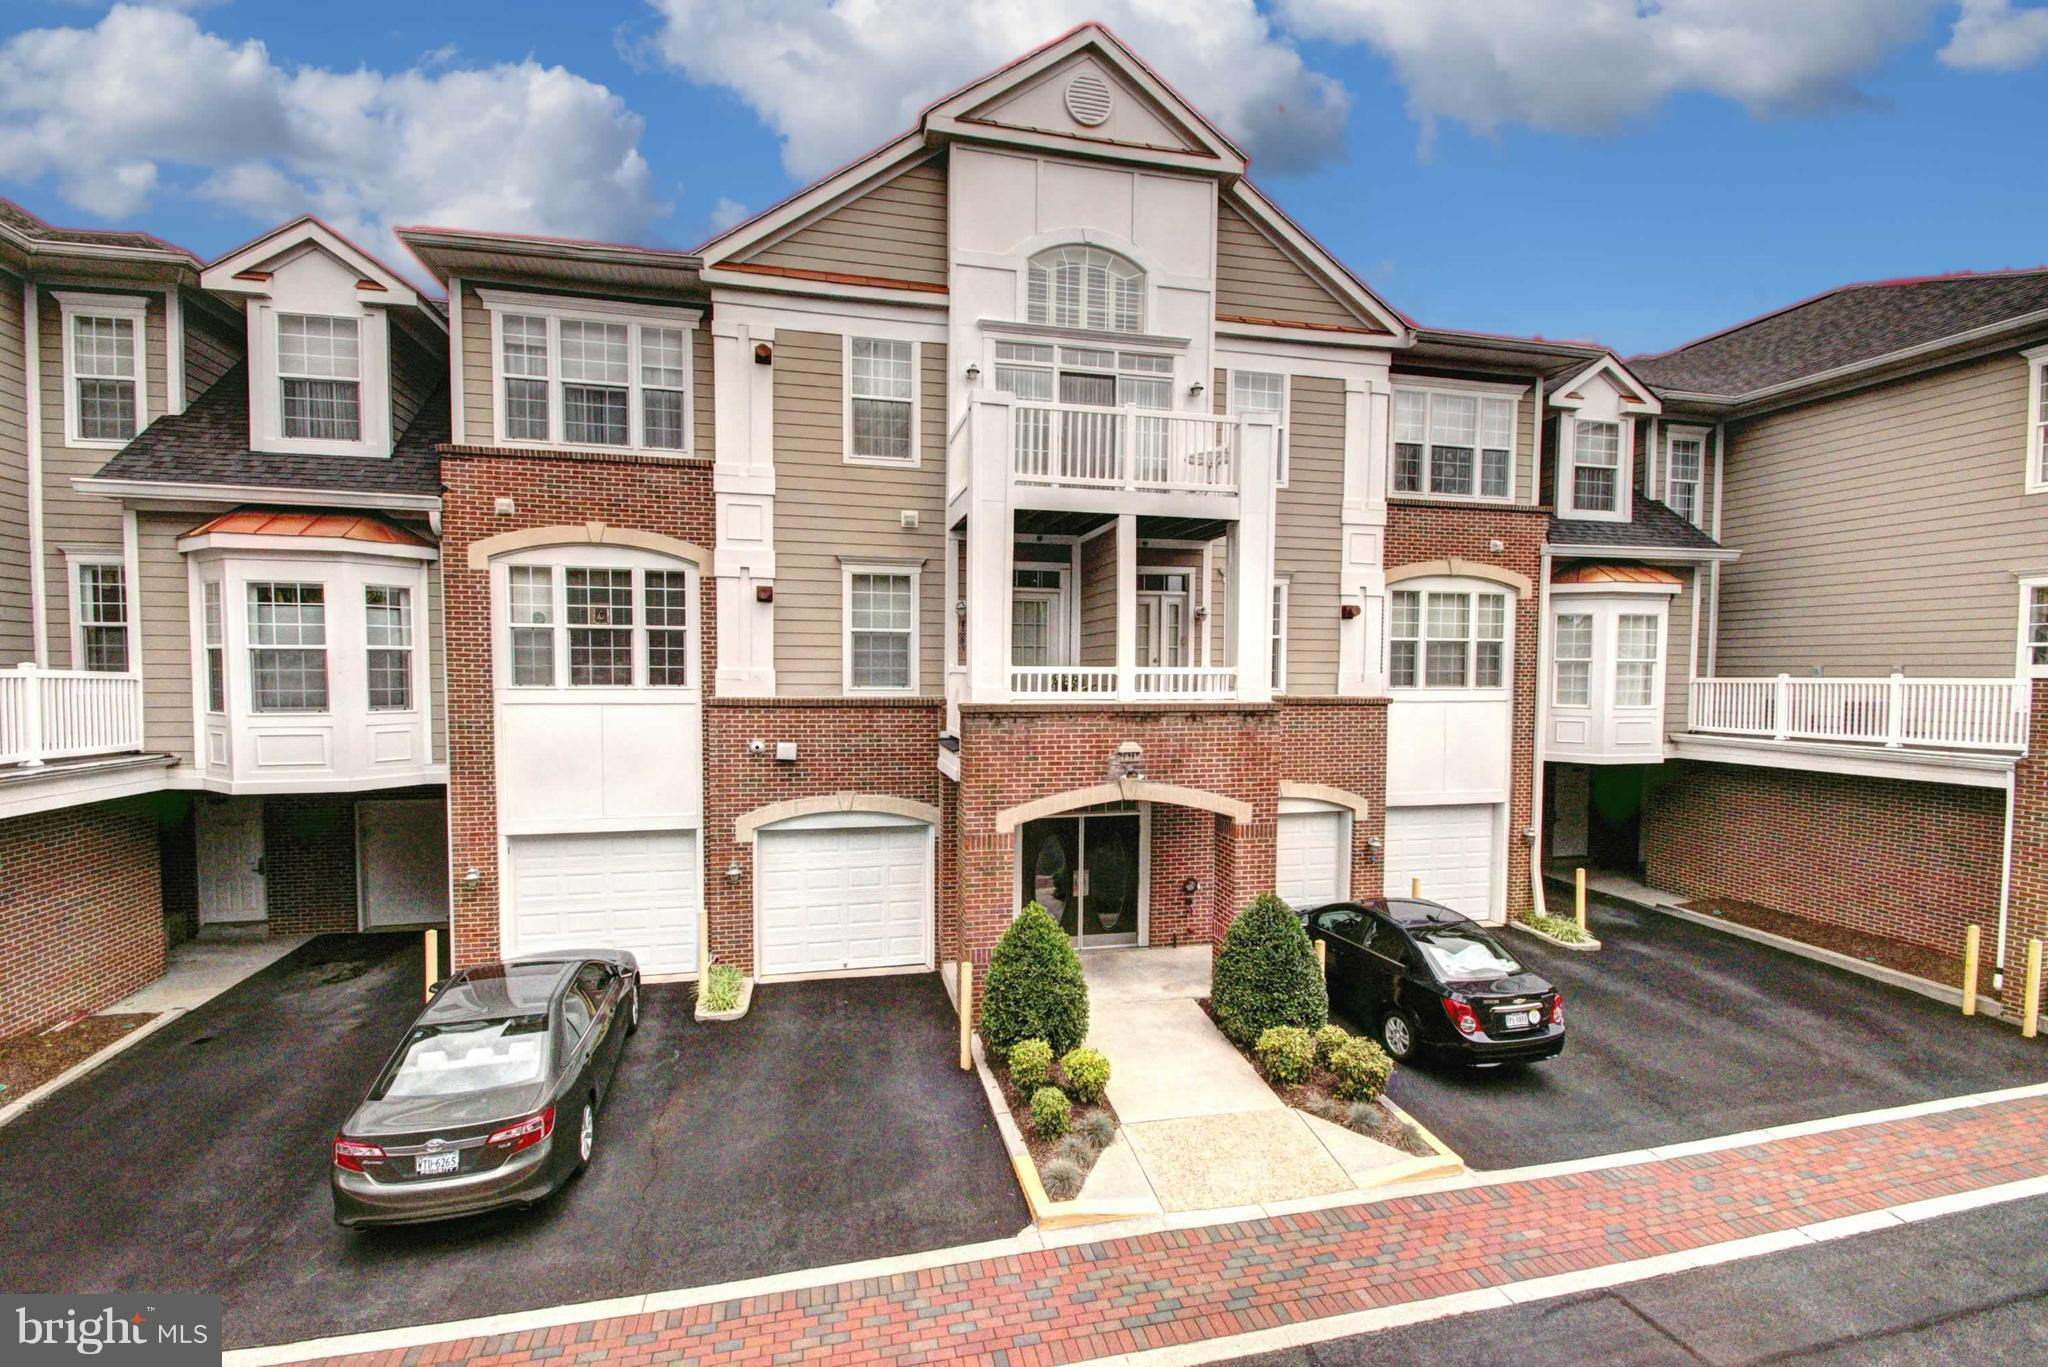 *STUNNING,IMMACULATE 2BR+DEN CONDO W/ BALCONY & BACKS TO TREES*Over 55 community in West Springfield w/ fantastic open floor plan & elevator access.Relaxing Master Suite w/ lux bath & walk-in closet, bright upgraded kitchen w/ huge breakfast rm, new carpet tailered moldings throughout & laundry room in unit & 1 car garage and parking